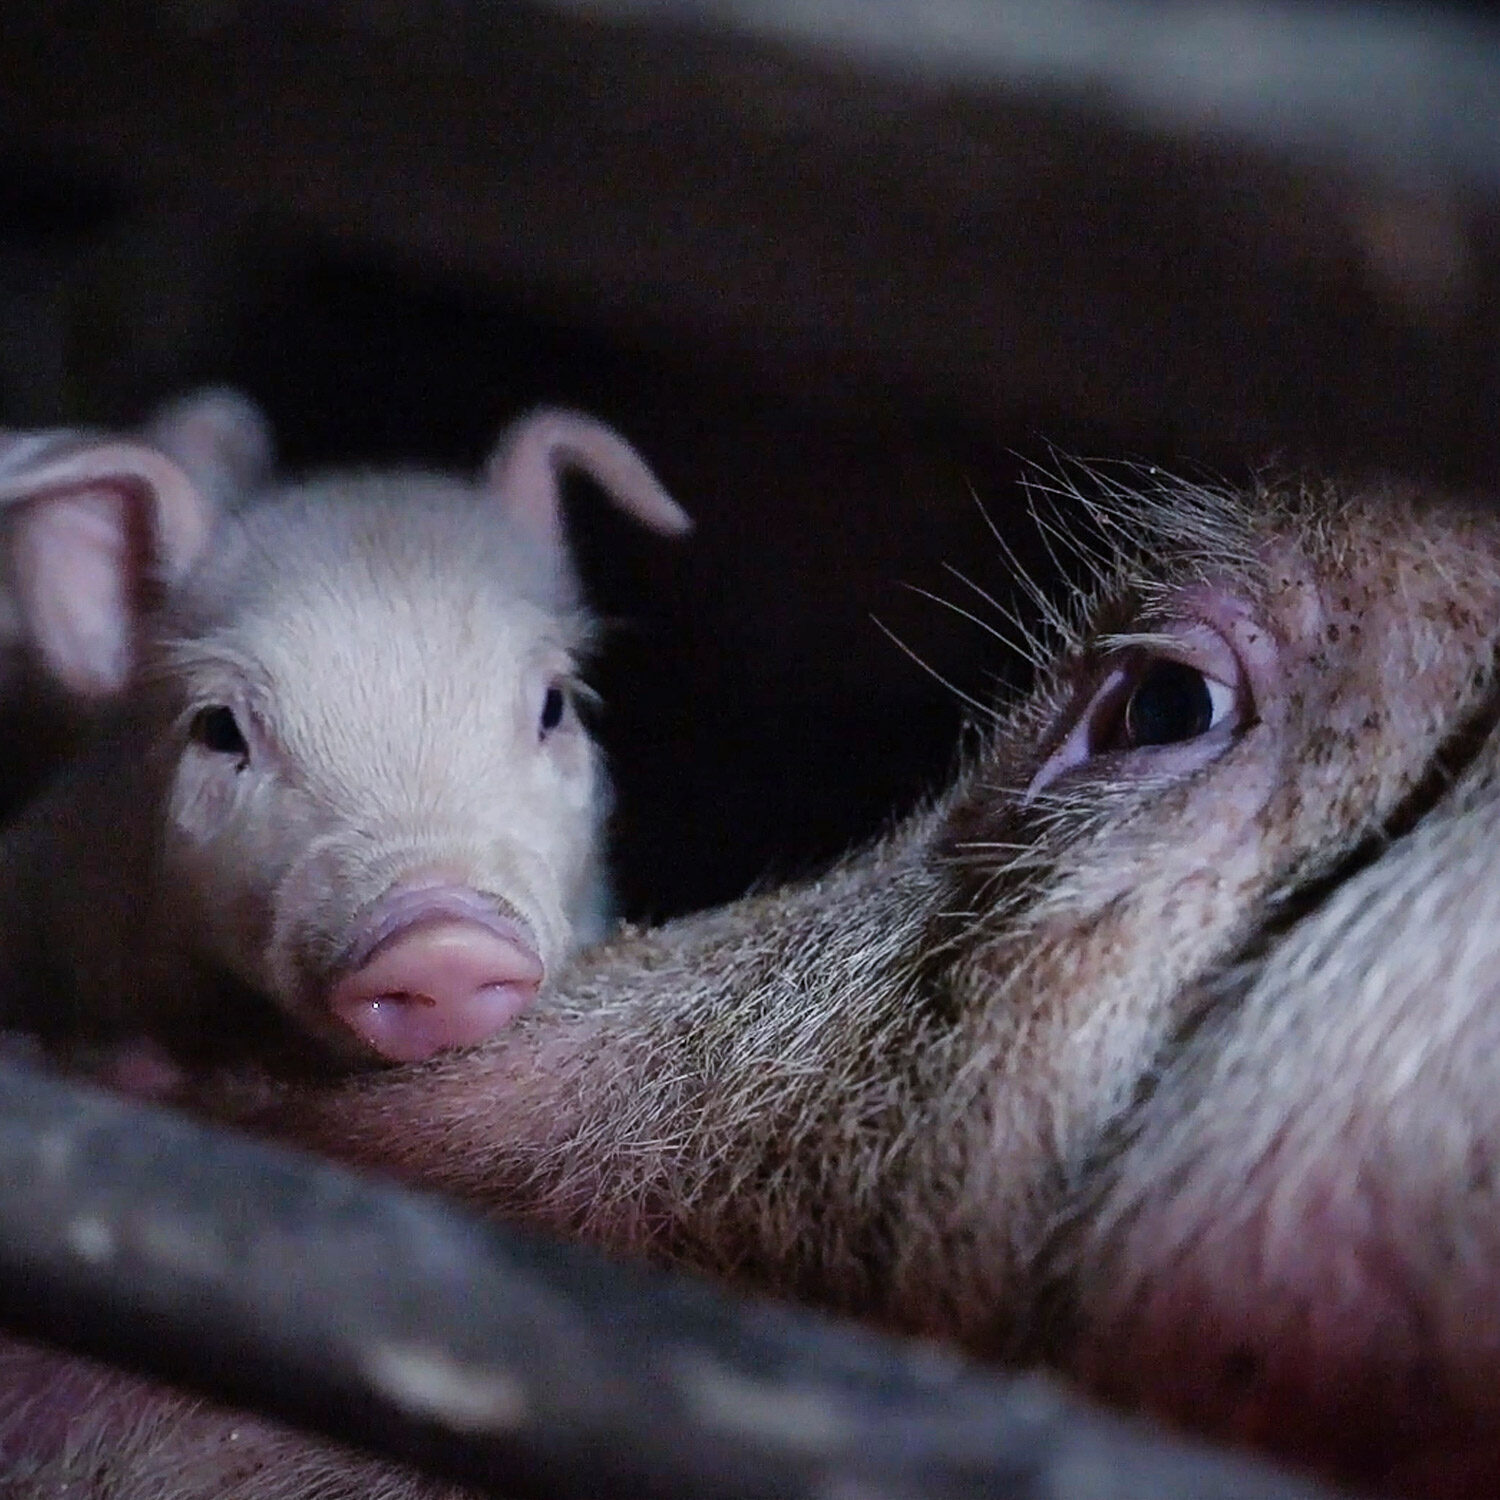 mother pig and piglet in gestation crate